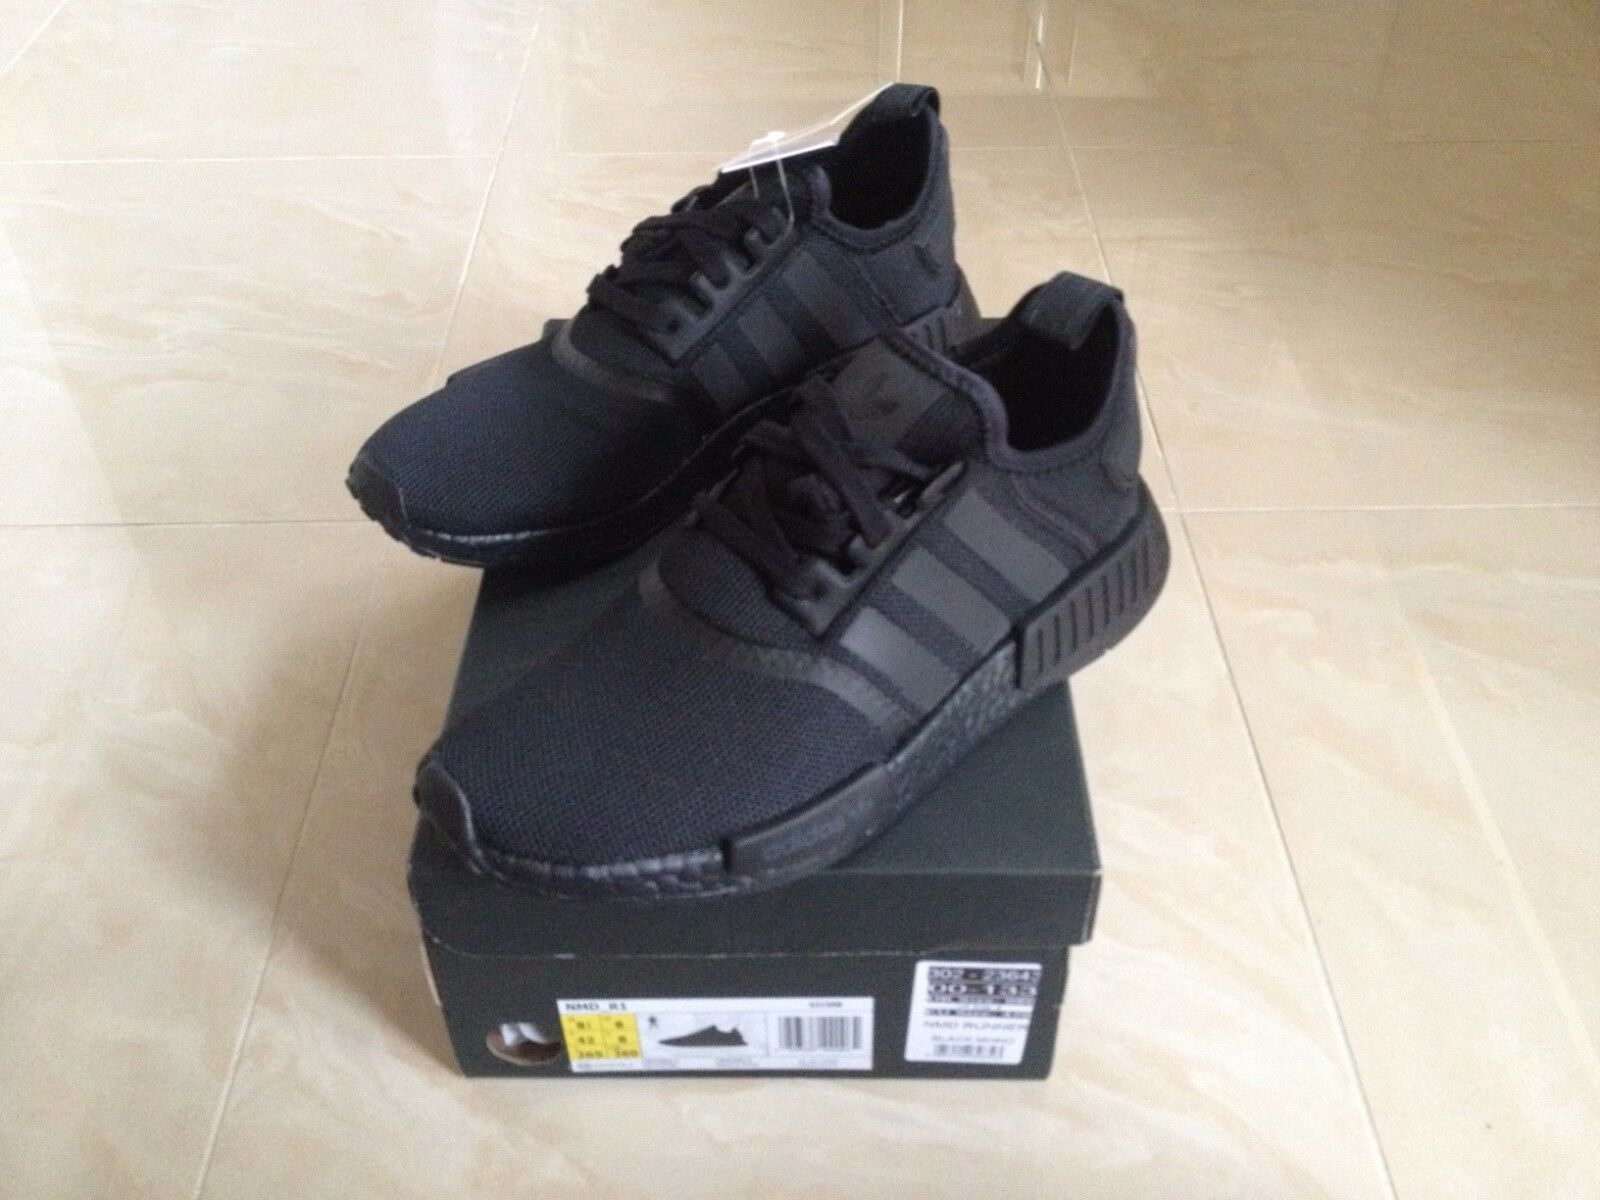 ADIDAS NMD R1 TRIPLE BLACK SIZES UK 7 NEW